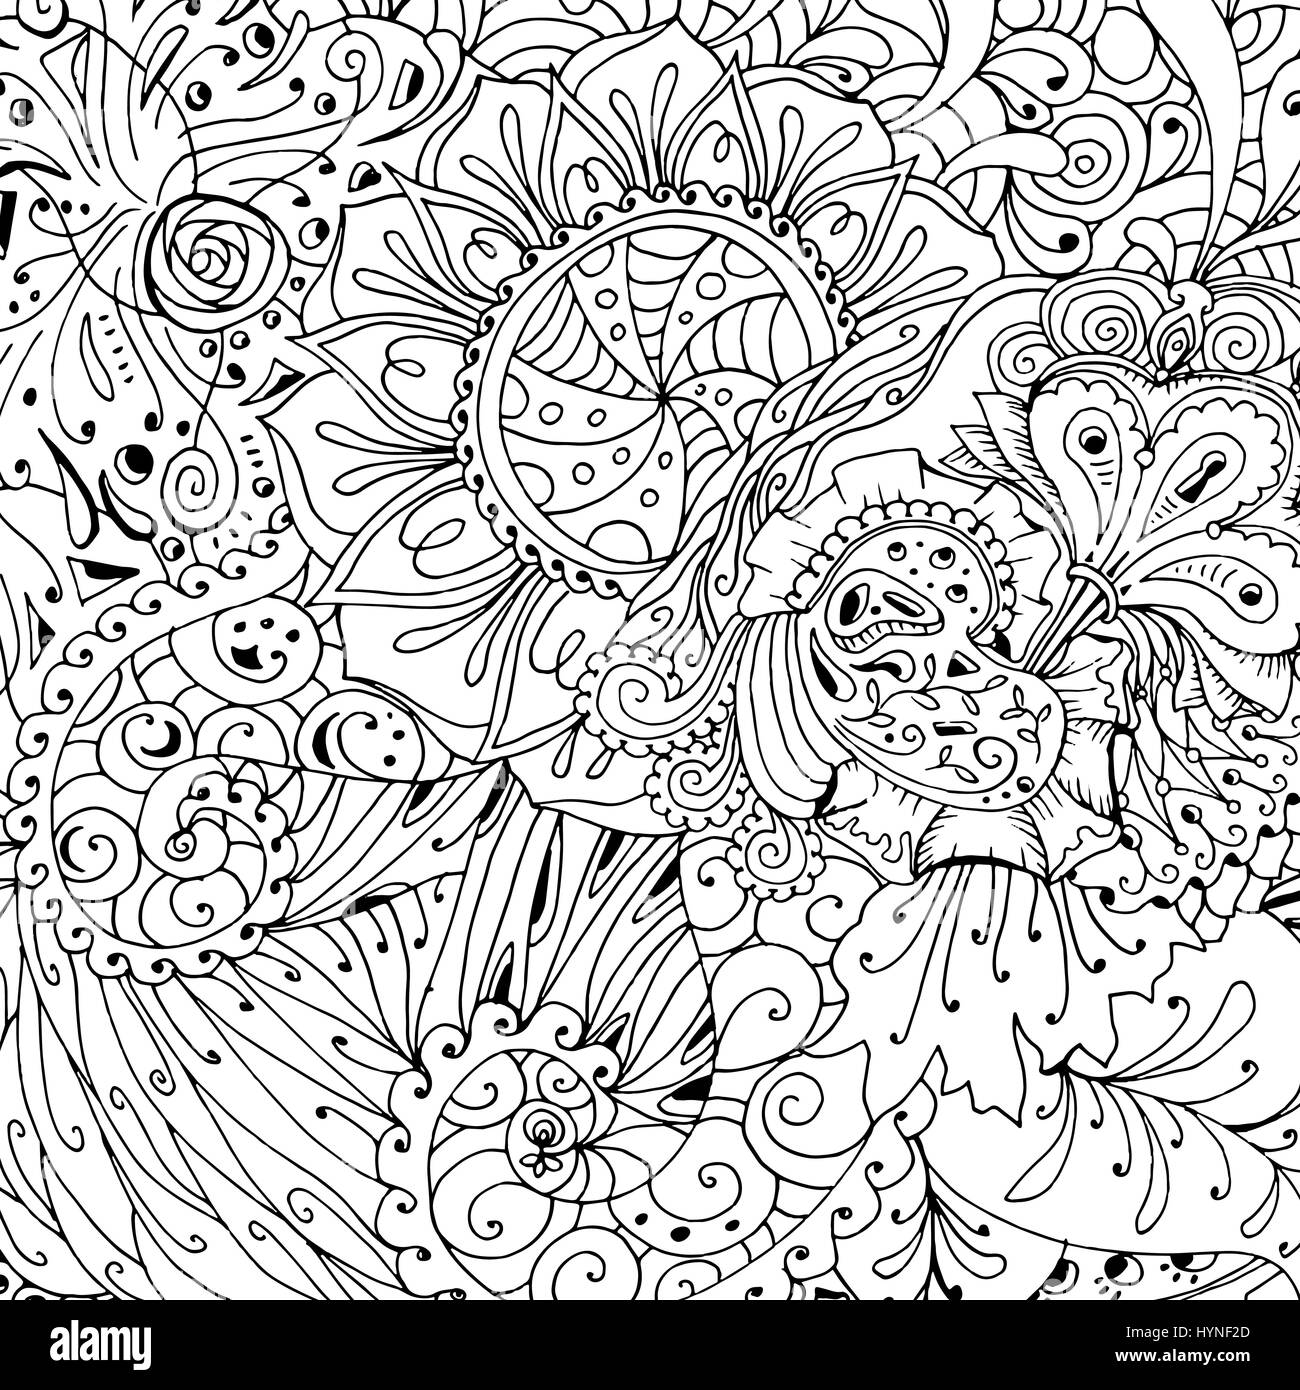 Coloring Book Page Design With Pattern Mandala Ethnic Ornament